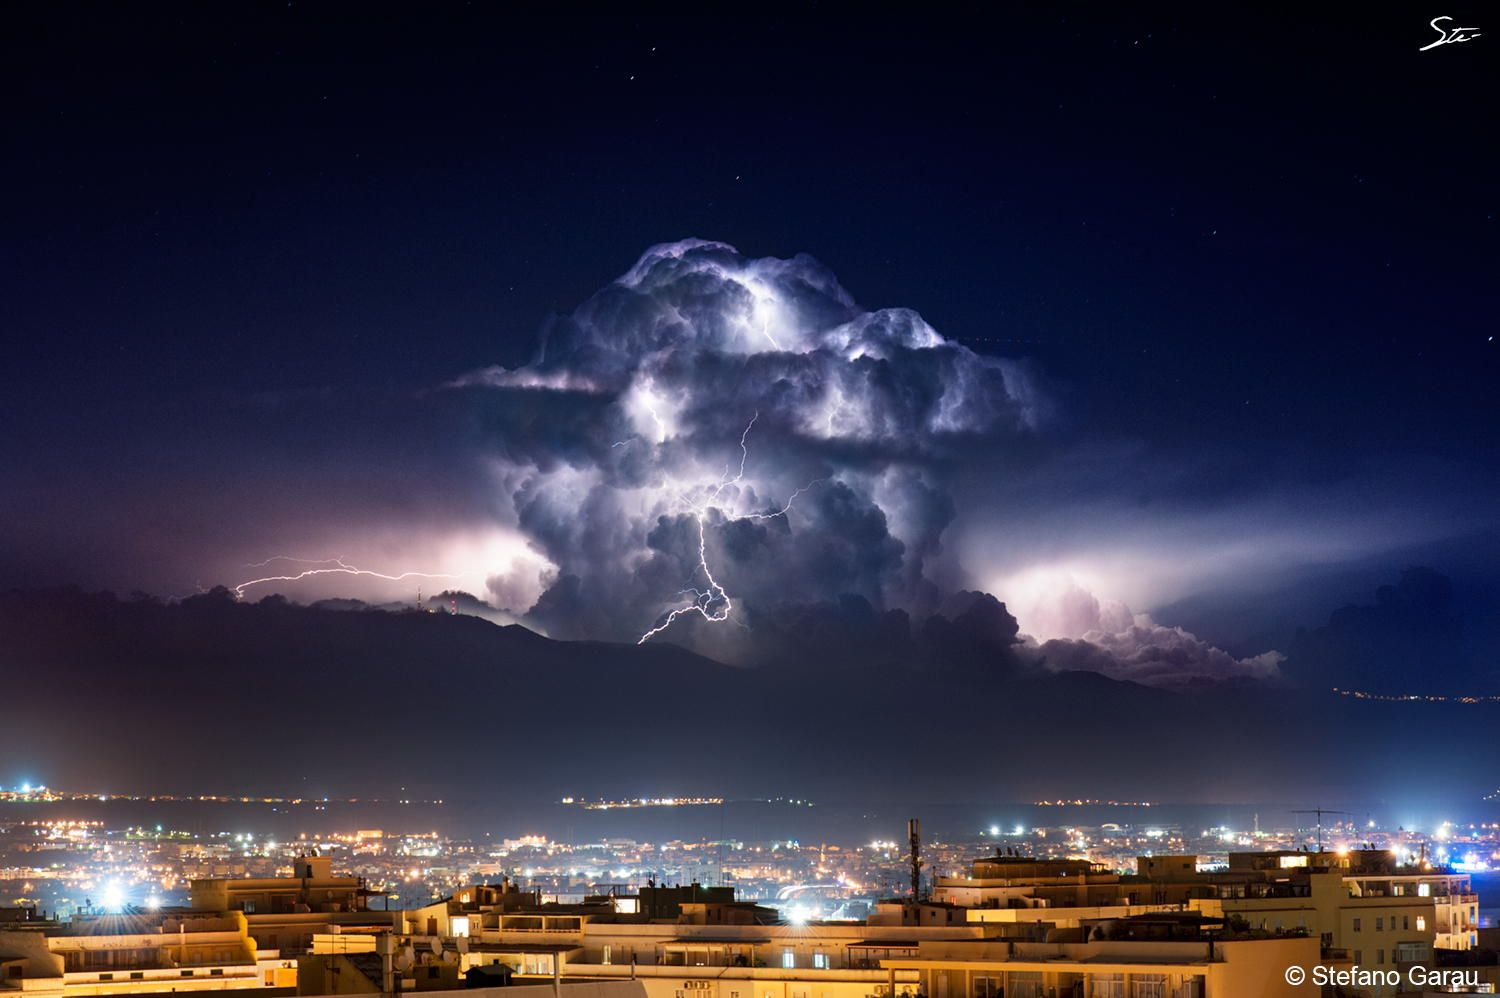 another lightning storm in Cagliari by Stefano Garau on 500px